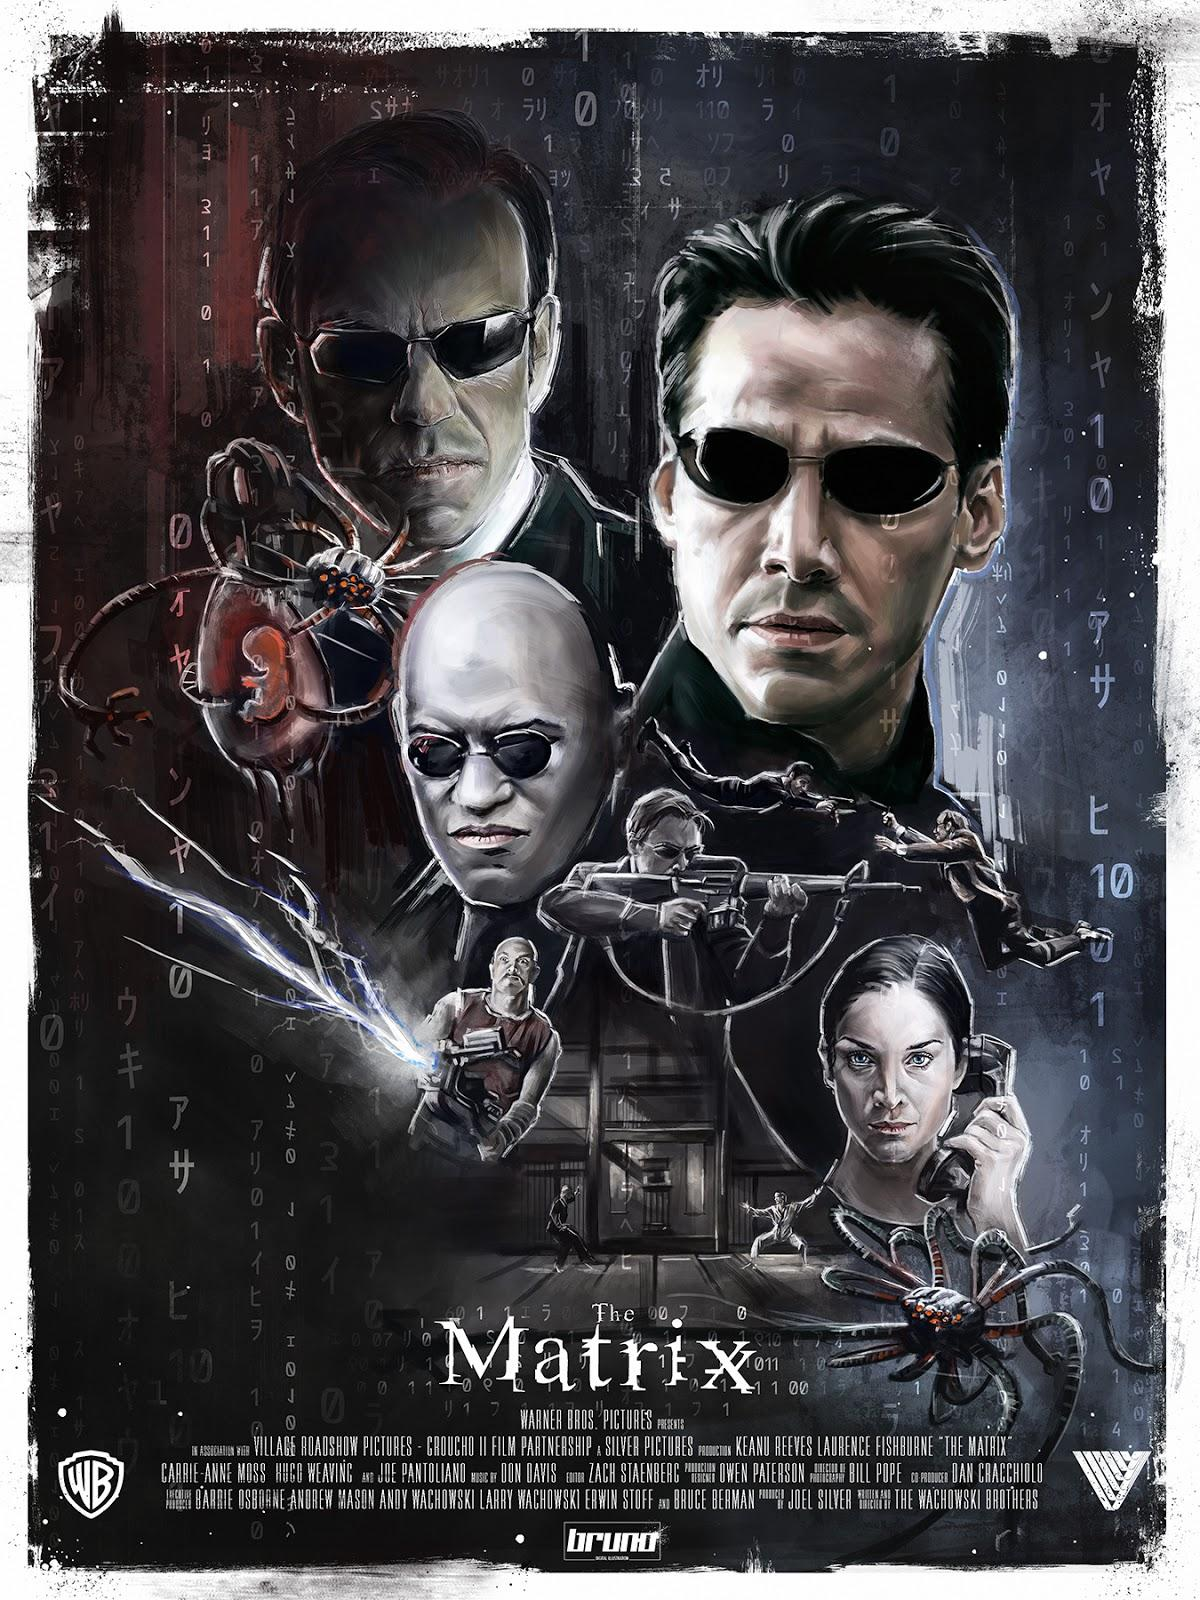 an analysis of the matrix trilogy by the wachowski brothers It is fairly obvious in 'the matrix' and 'the matrix reloaded' that one of the major  themes of the movies is the theme of illusion and reality  according to many  reports, including earlier interviews of the wachowski brothers, the wachowskis  are.